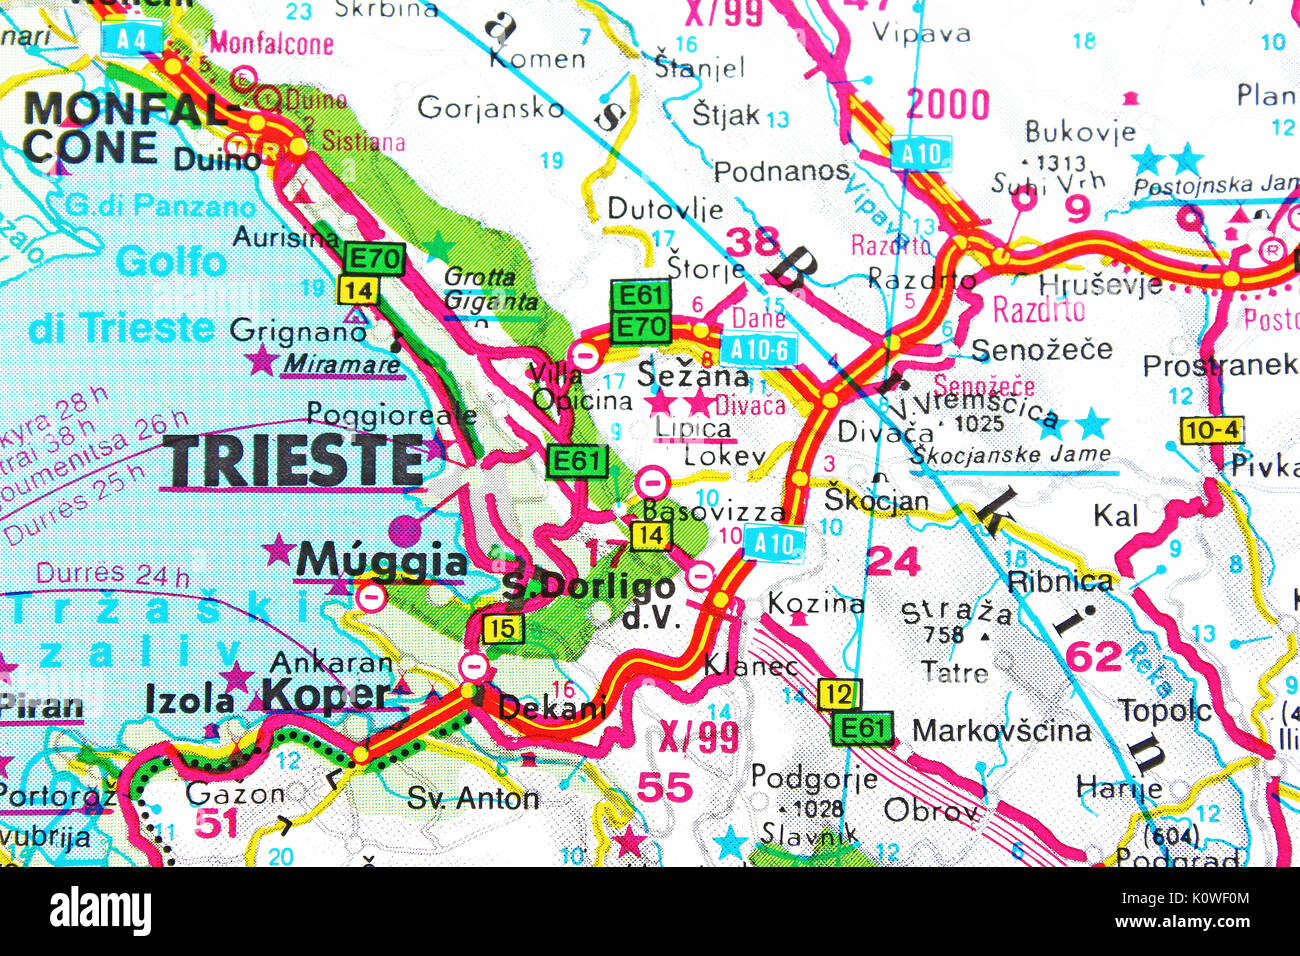 Trieste Map City Map Road Map Stock Photo Royalty Free Image - Trieste map